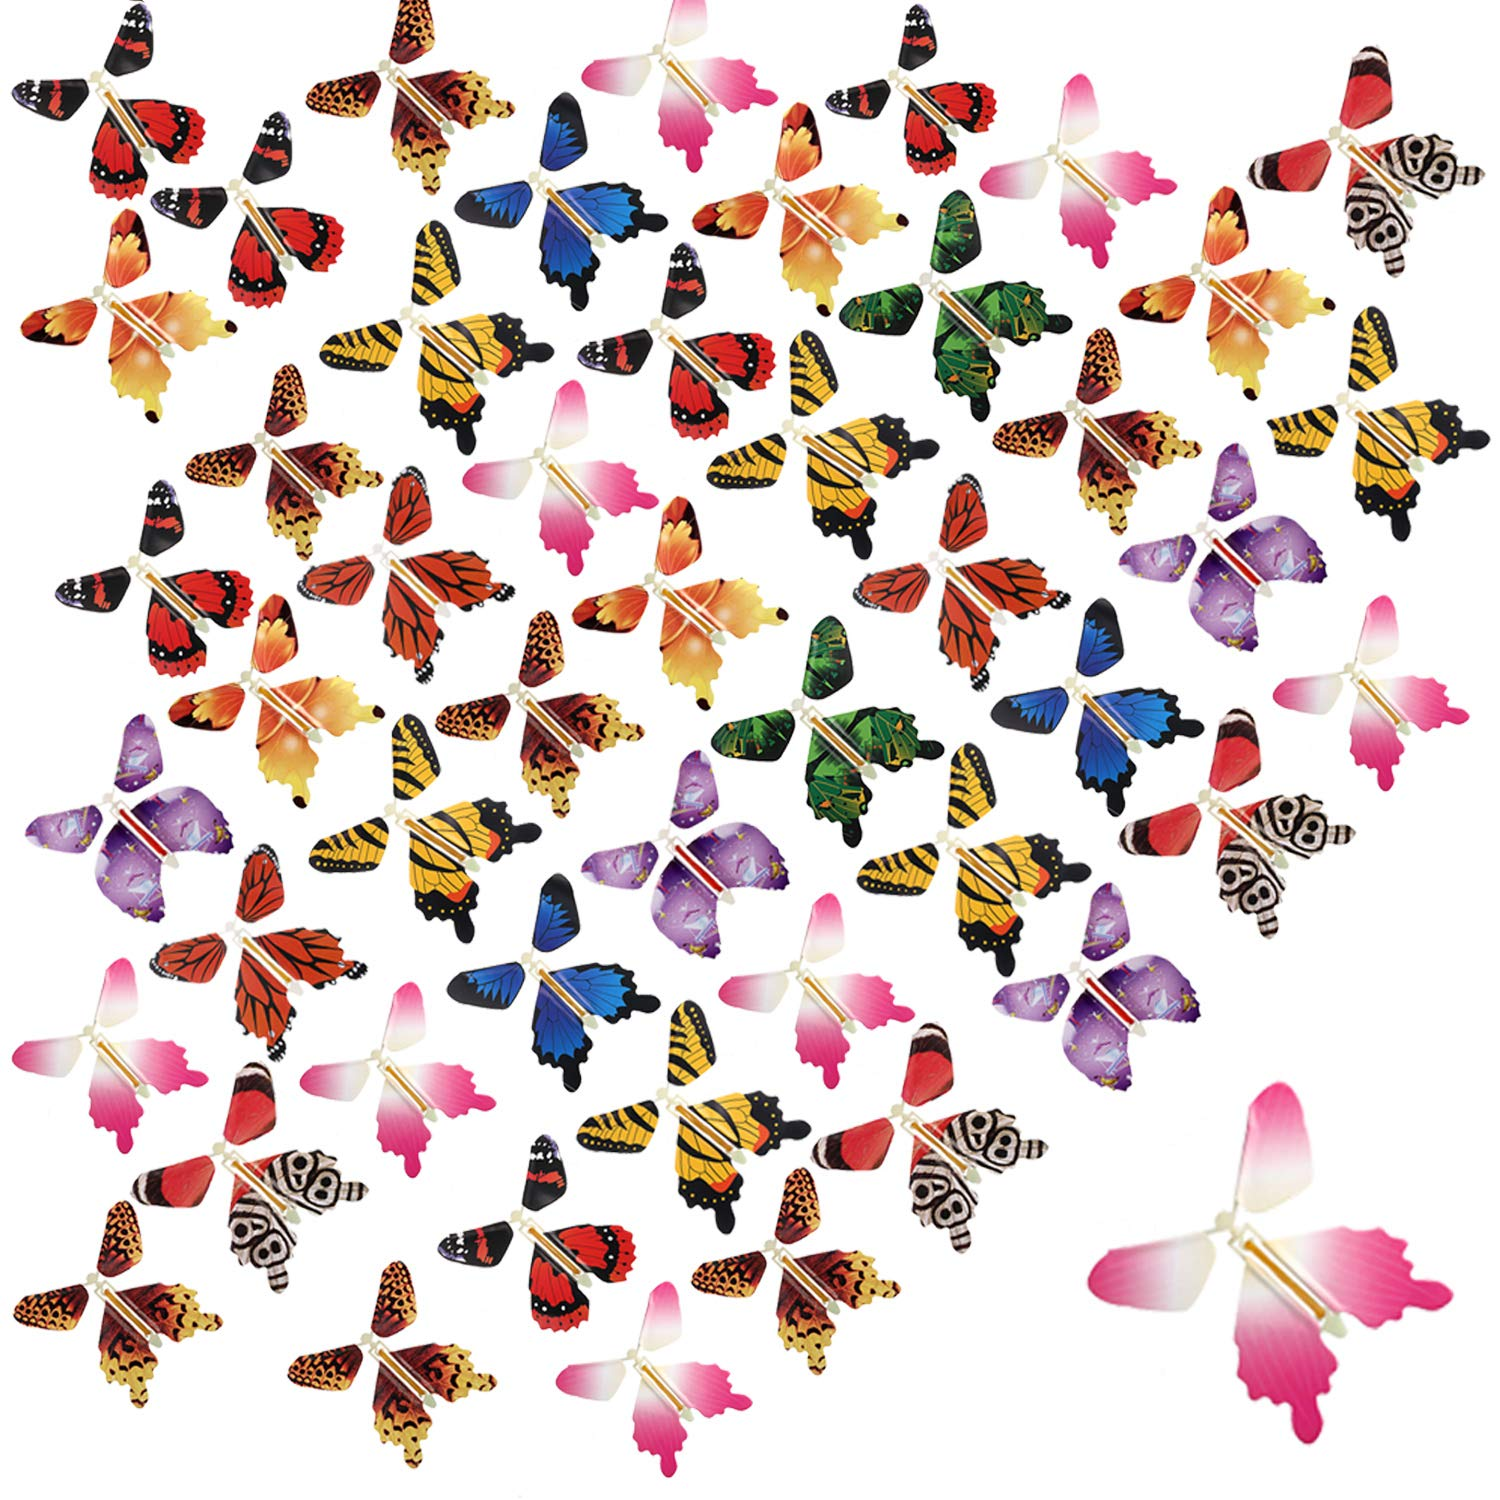 beemean Magic Flying Butterfly Gift Cards - Wind Up Butterfly in The Book Fairy Toy Great Surprise Wedding (50PCS) by beemean (Image #7)